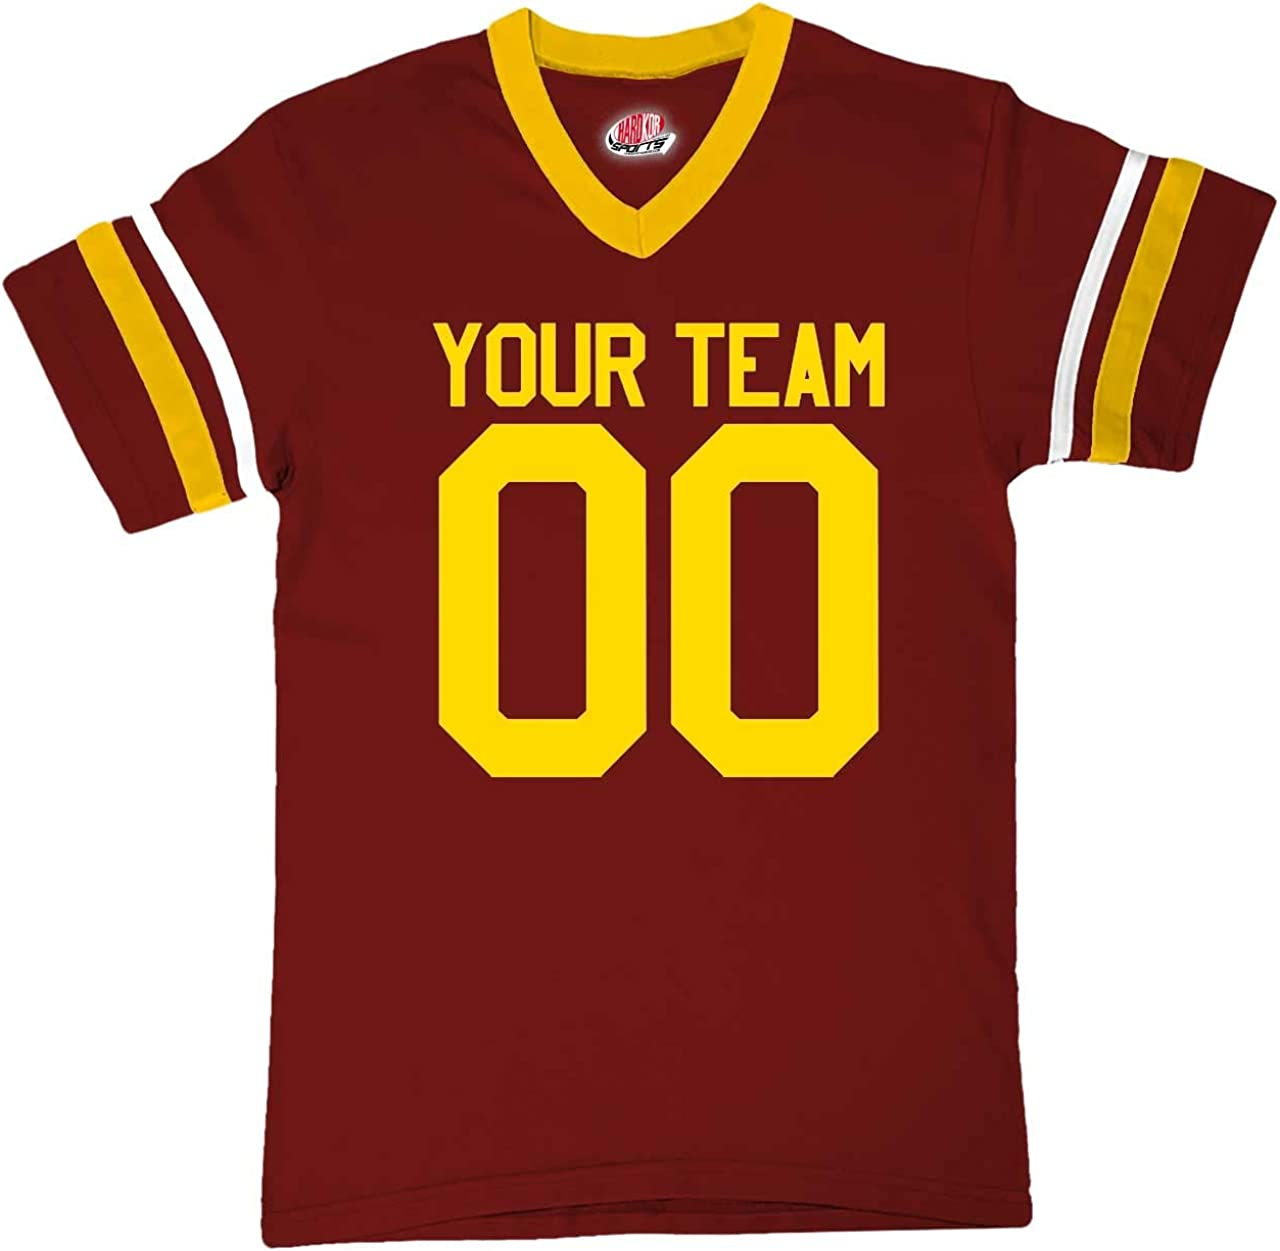 Custom Maroon and Gold Casual Football Fan Jersey Personalized Team Name and Your Numbers